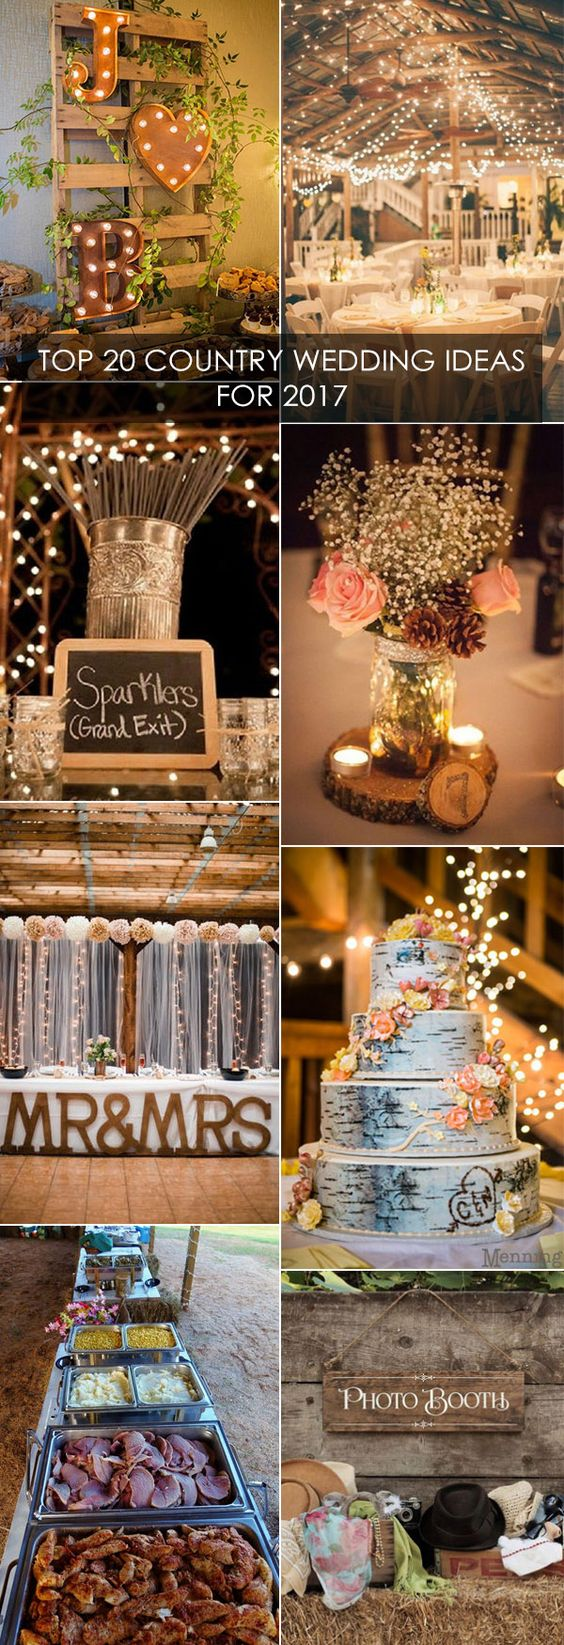 Top 20 Country Wedding Ideas You'll Love for 2017 Trends